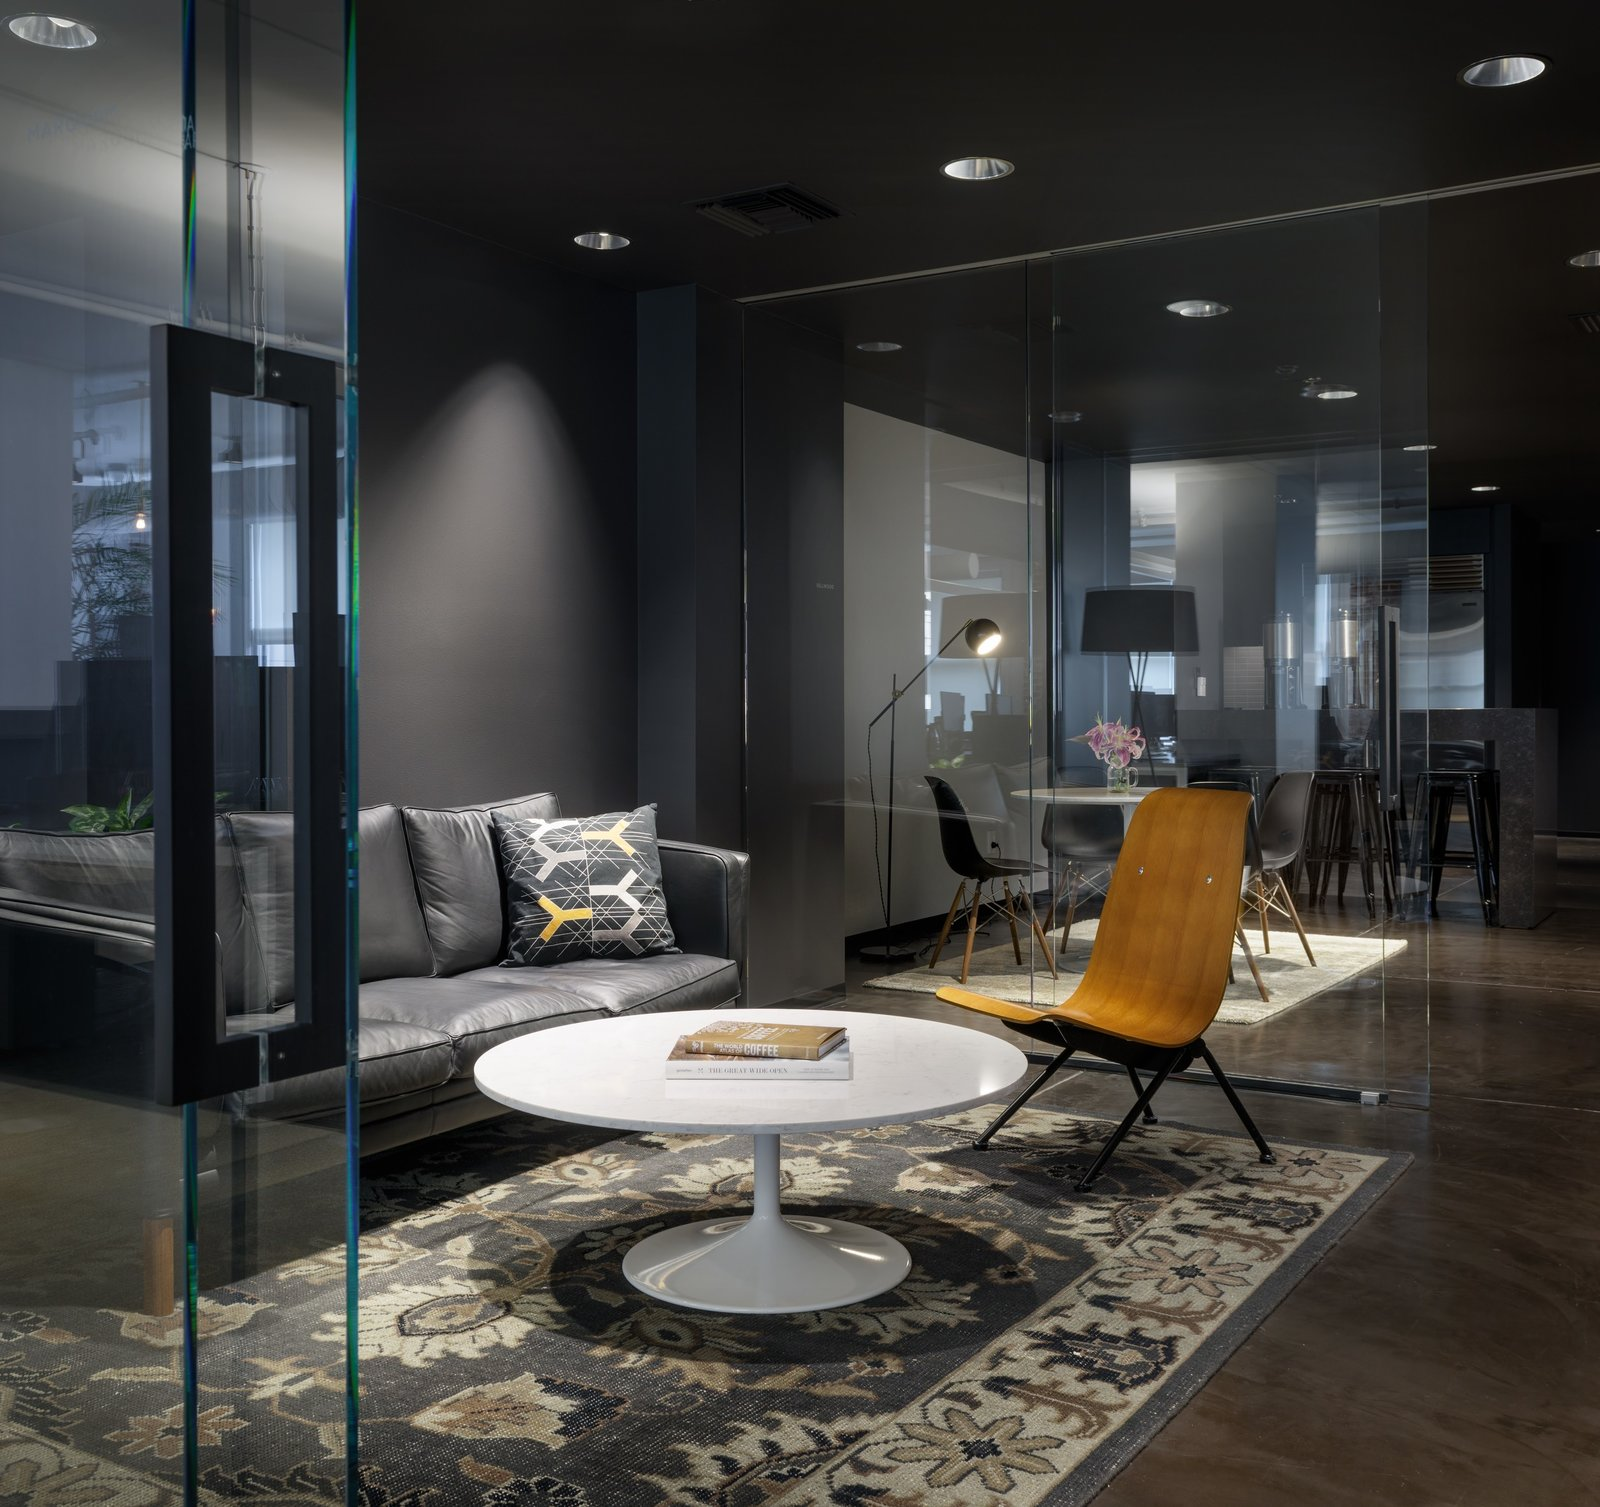 Touches of warmth are added to this dark space with dynamic lighting to breathe life into the room.  Photo 8 of 12 in Step Inside Squarespace's Minimalist Portland Office